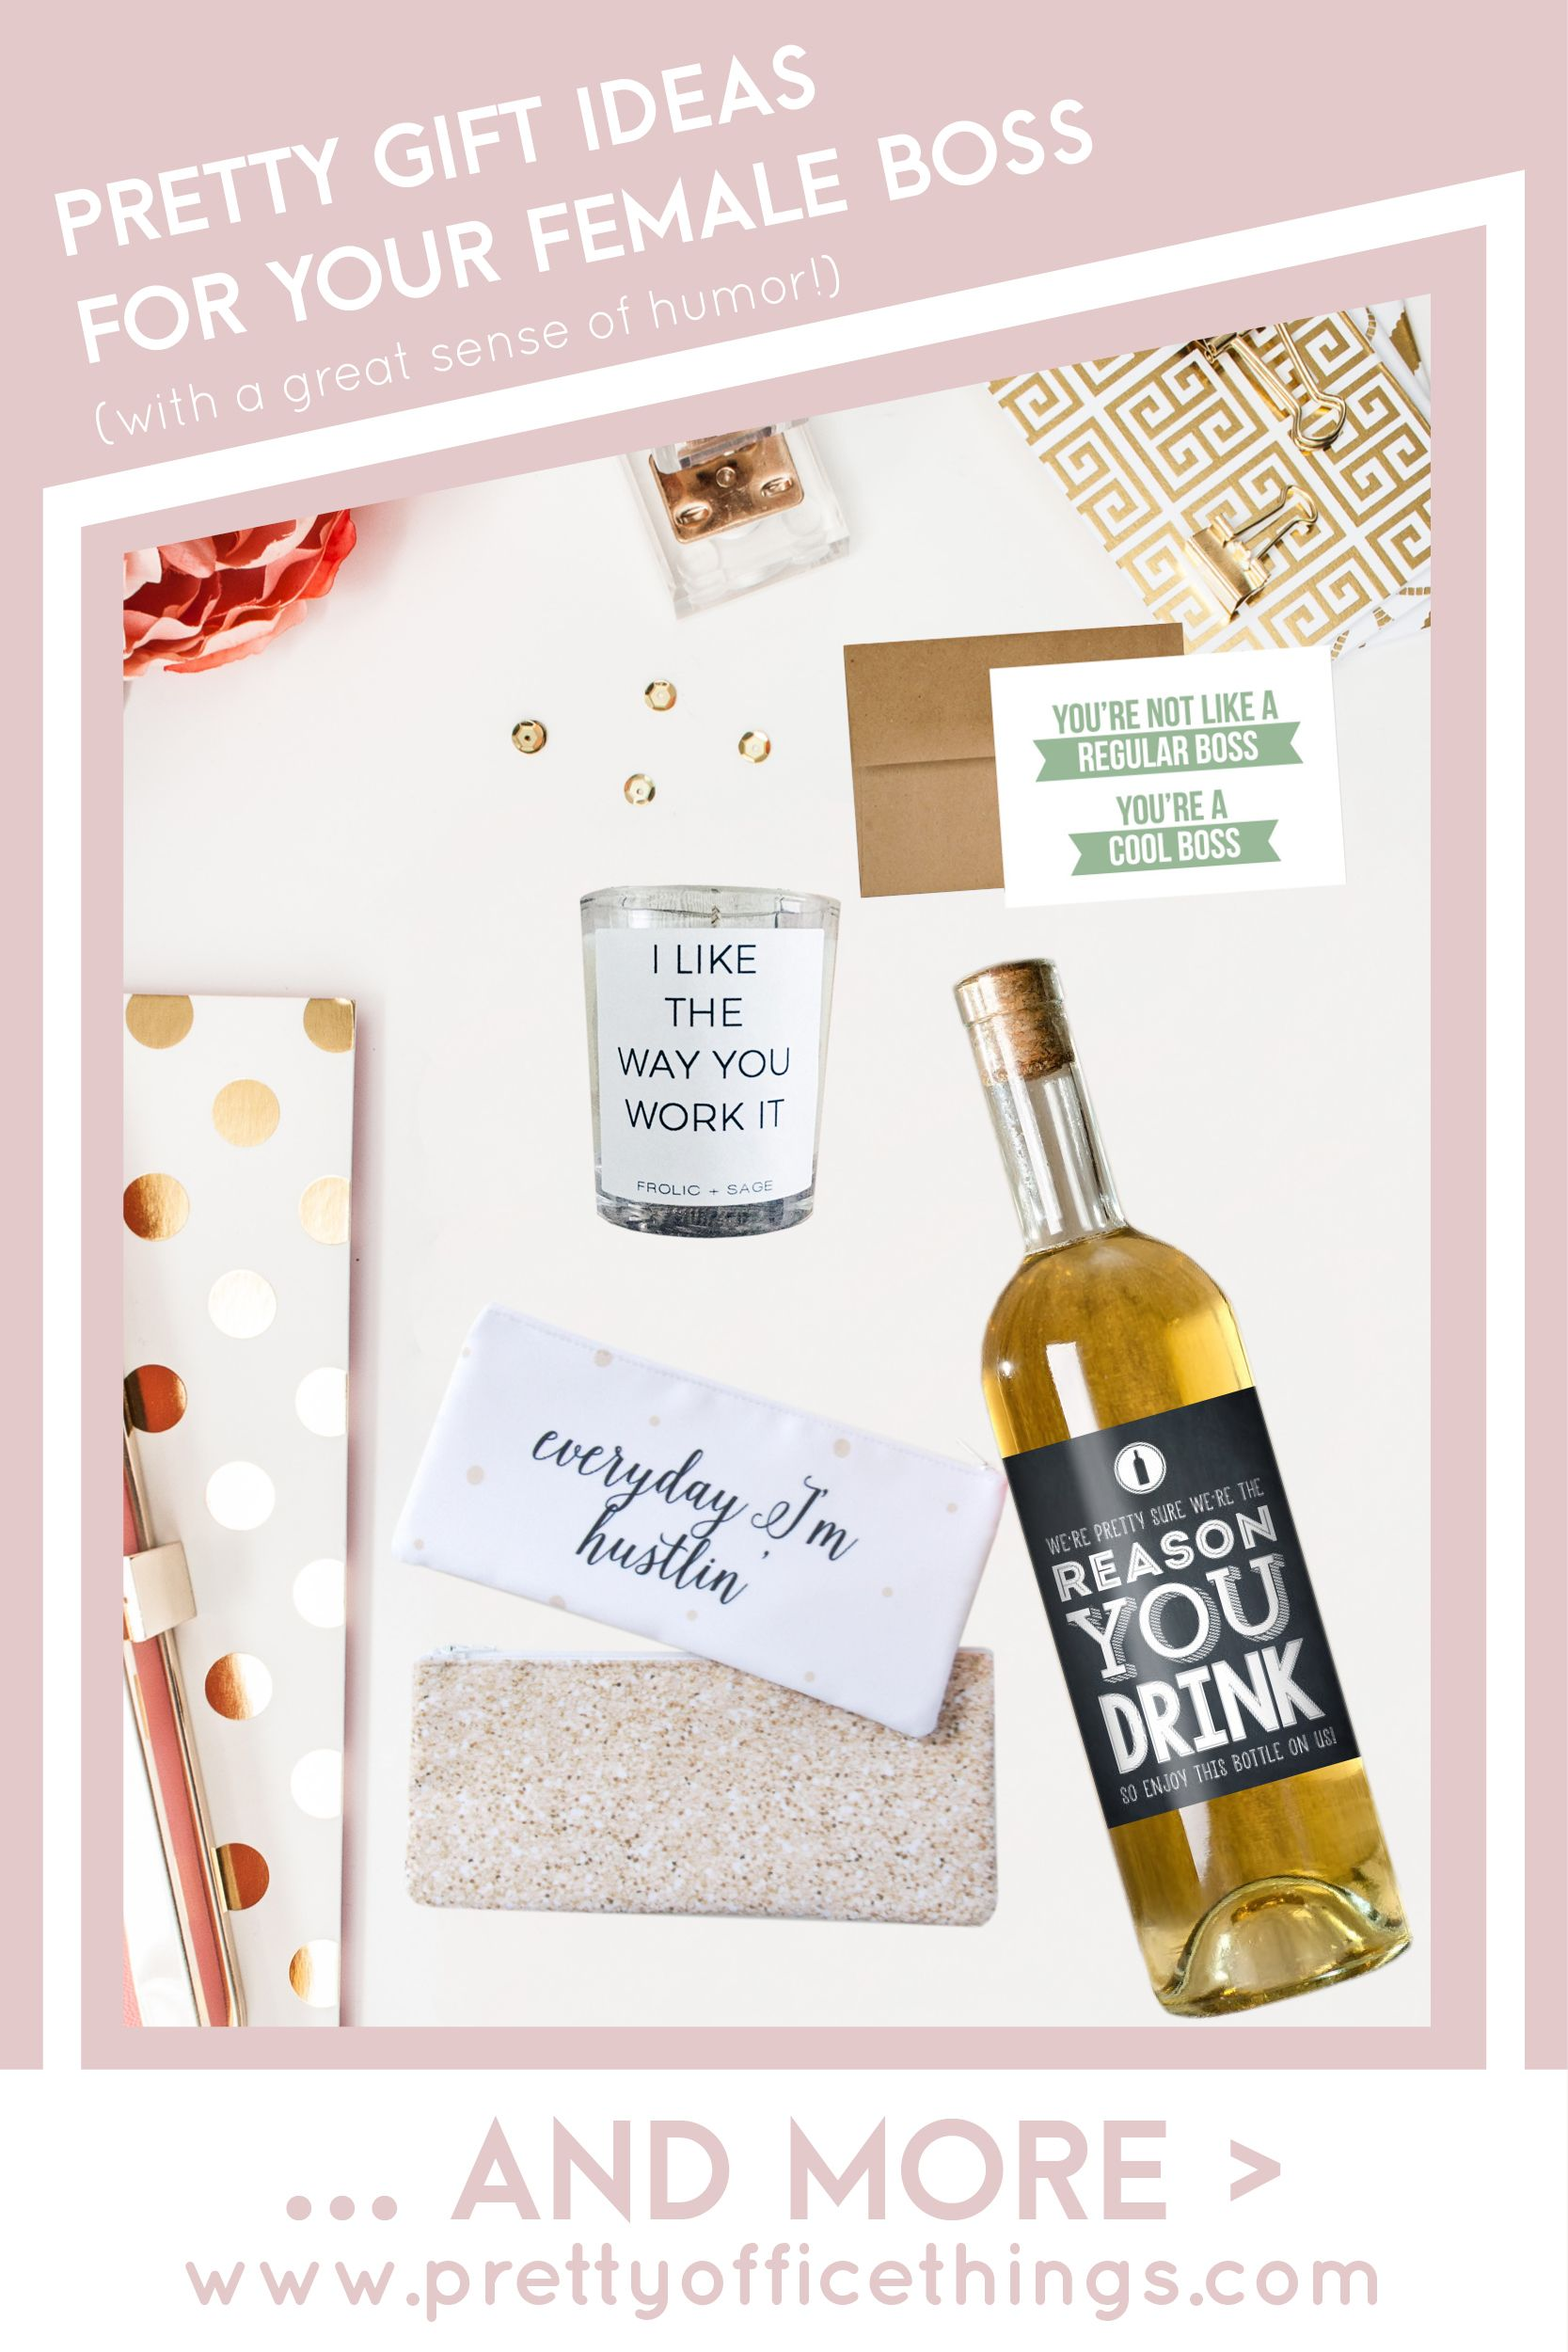 pretty gift ideas for your female boss with a great sense of humor